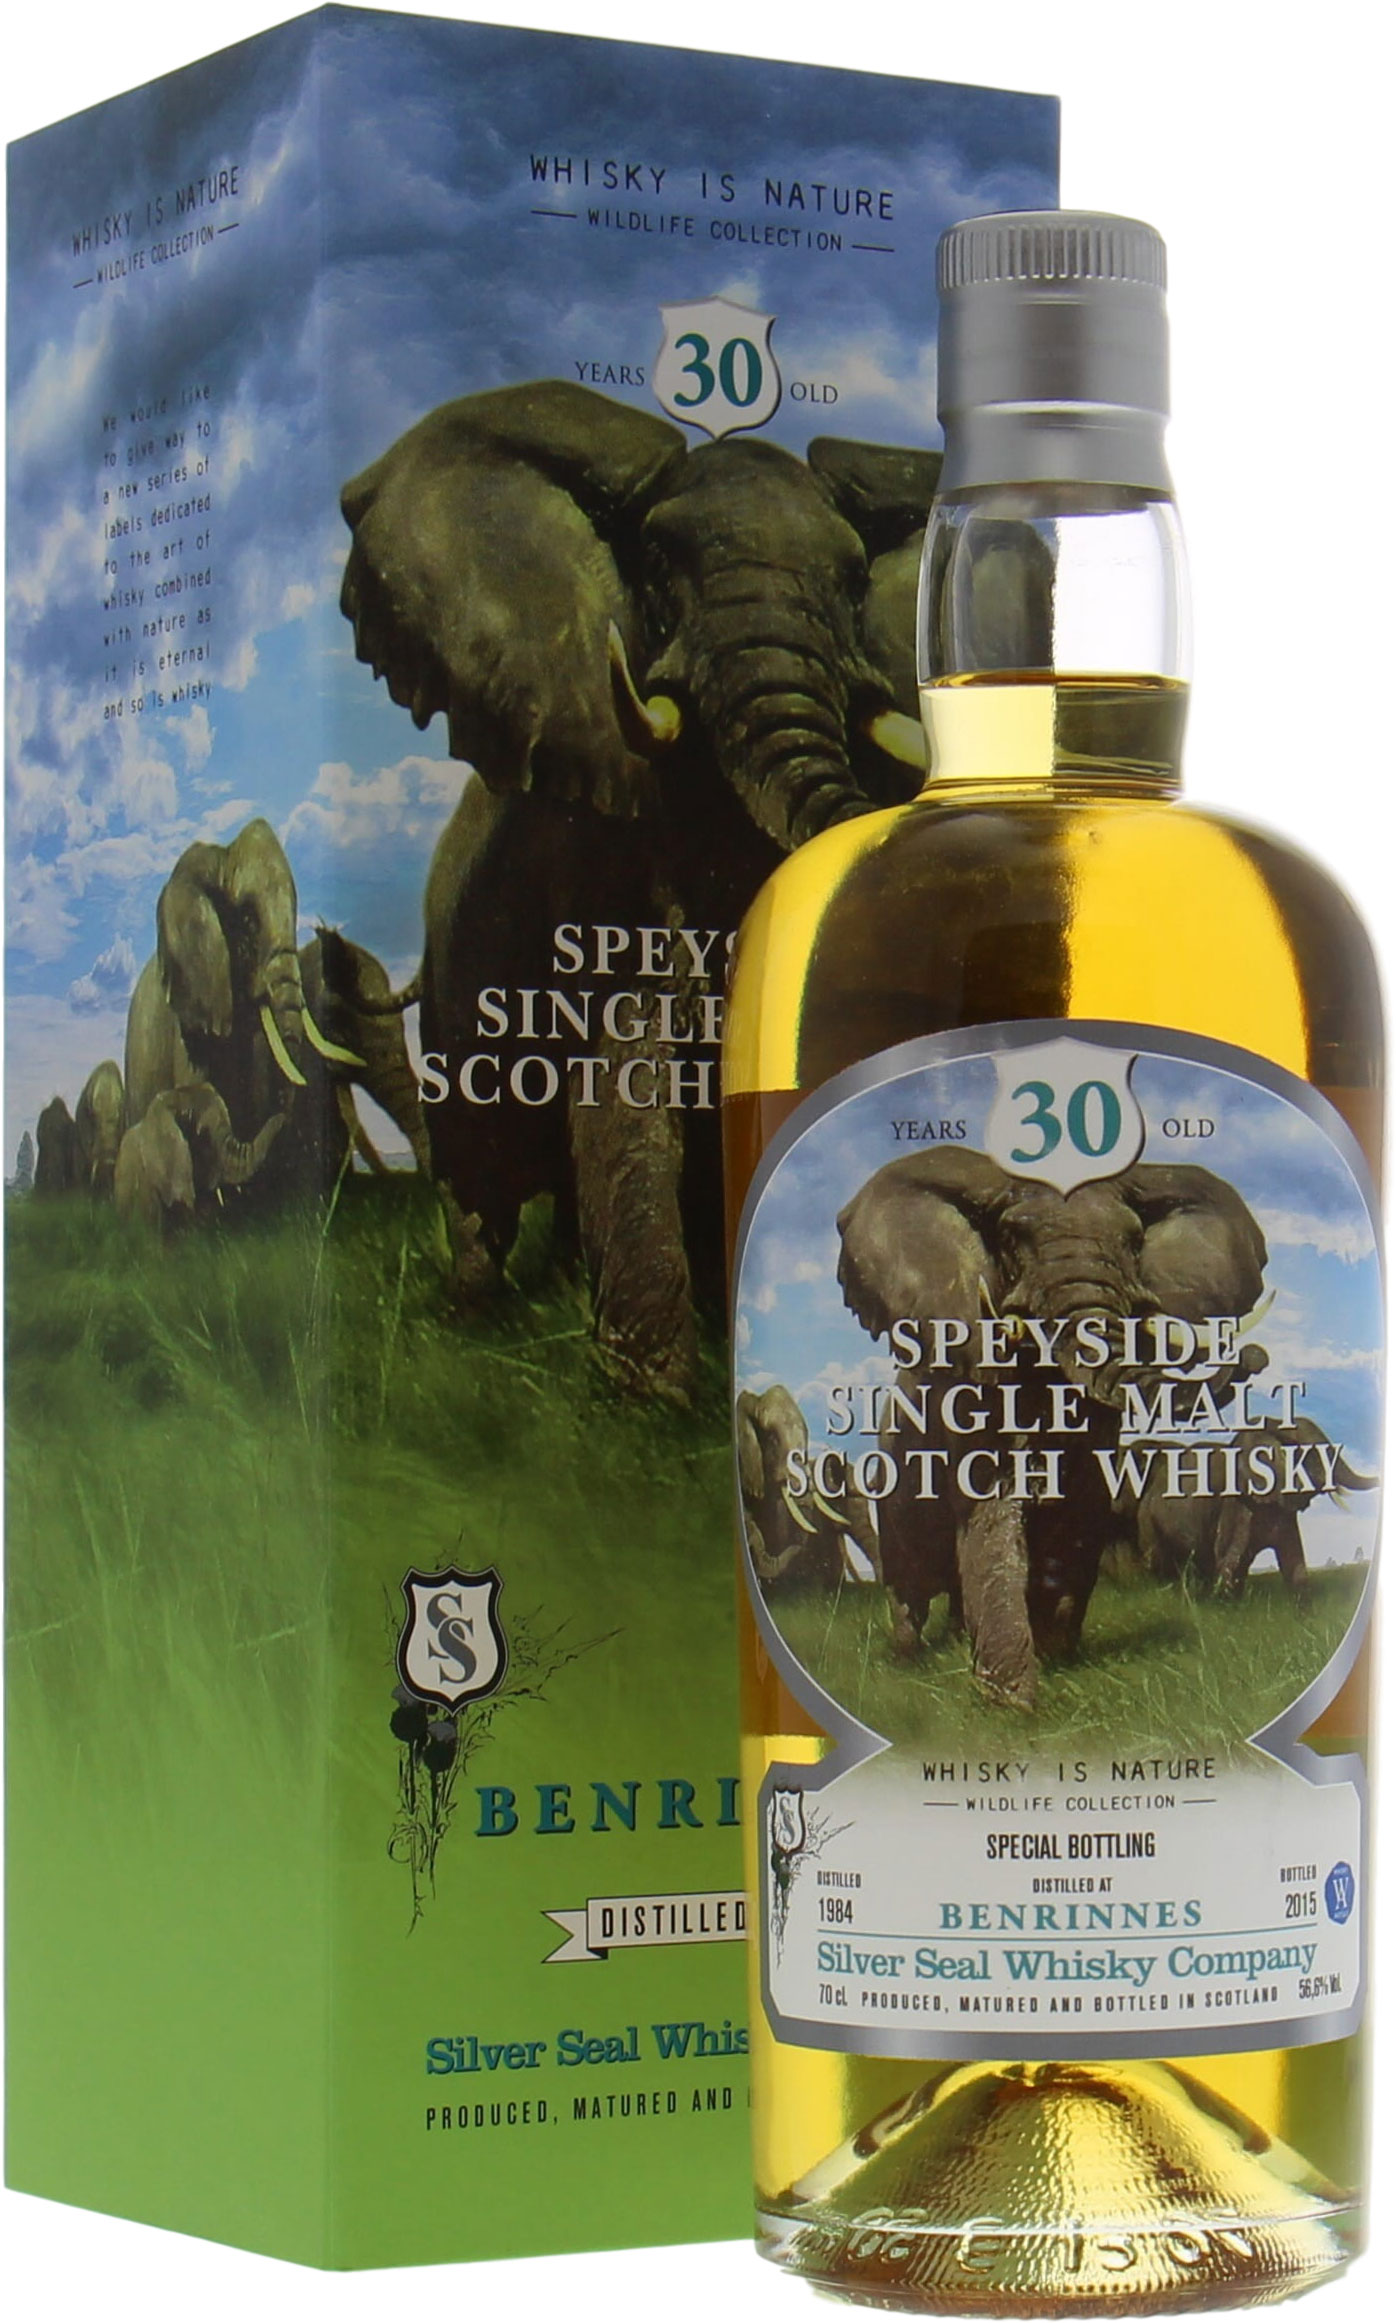 Benrinnes - 30 Years Old Silver Seal Wildlife Collection Cask 2268 56.6%